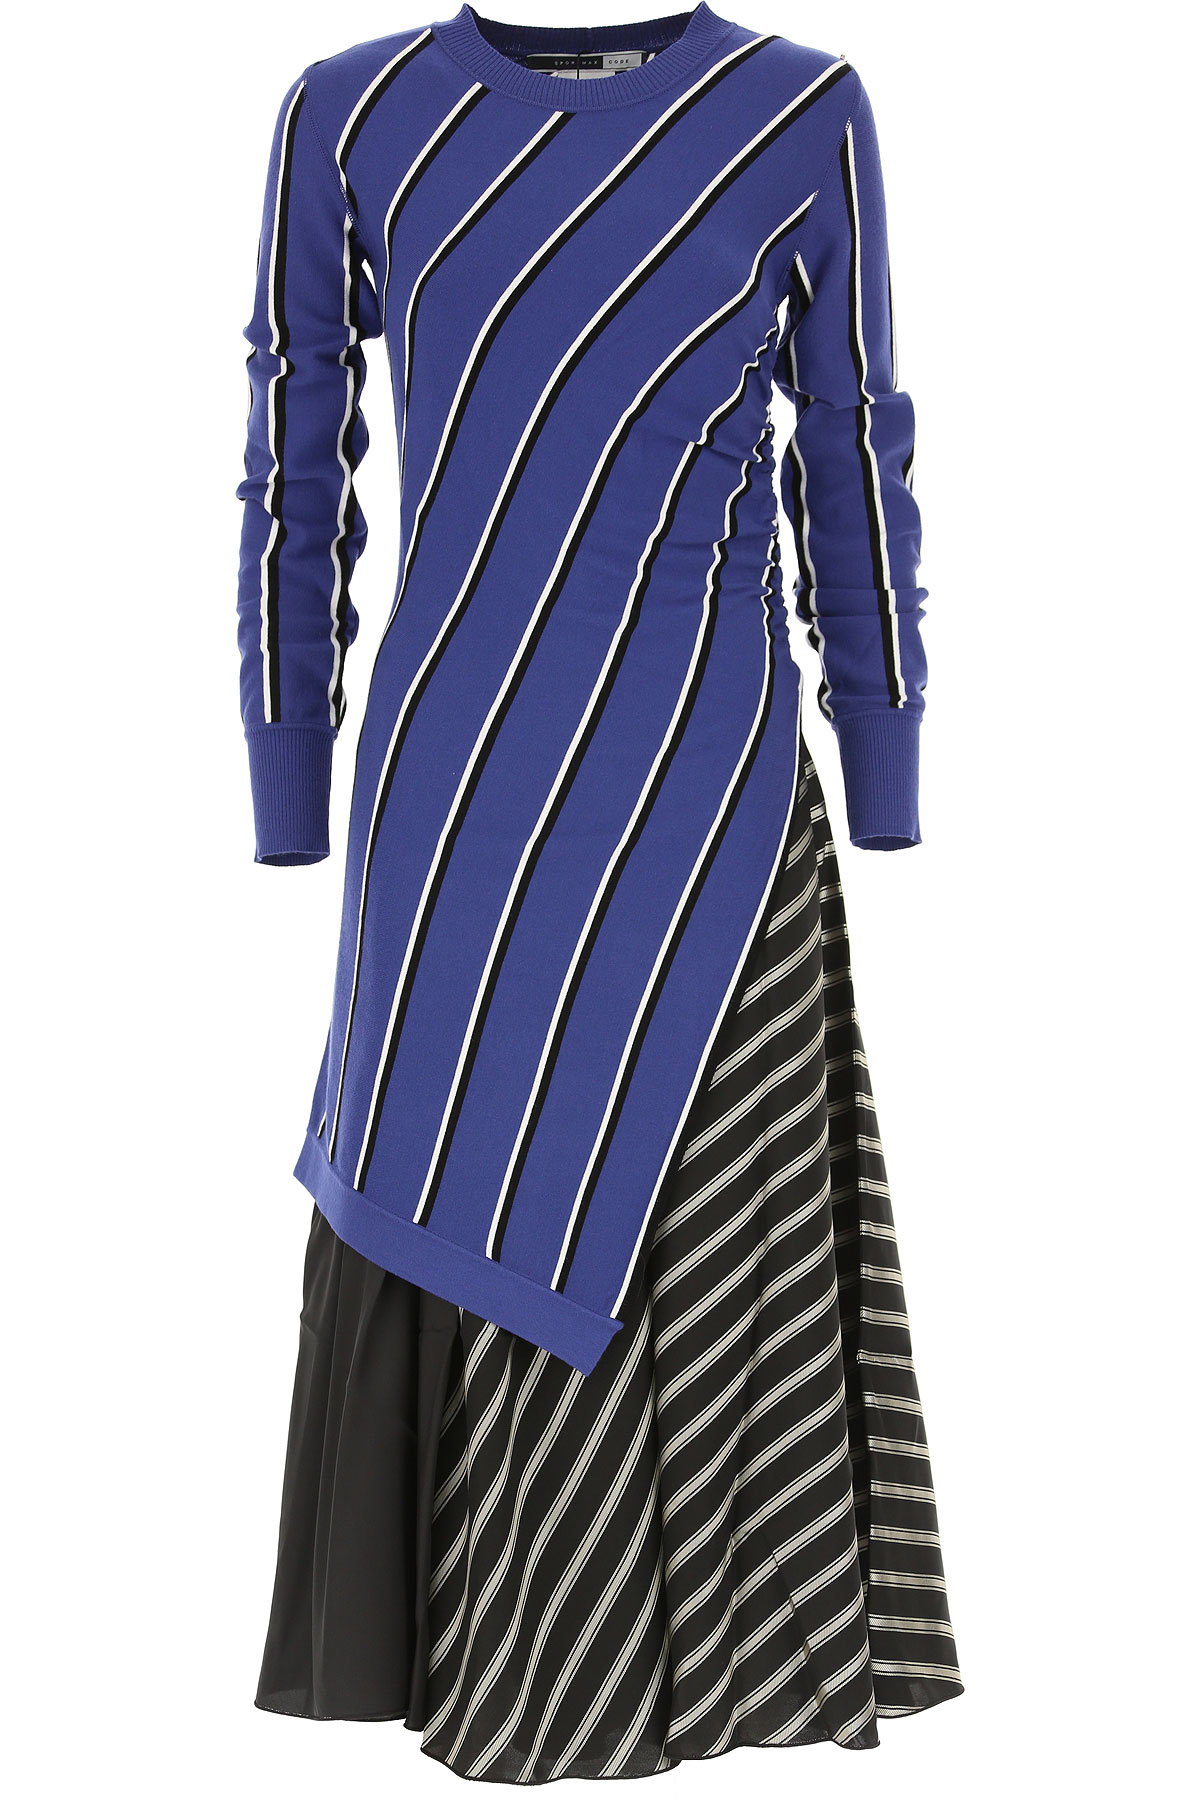 Image of SportMax Dress for Women, Evening Cocktail Party, Bluette, Viscose, 2017, 4 6 8